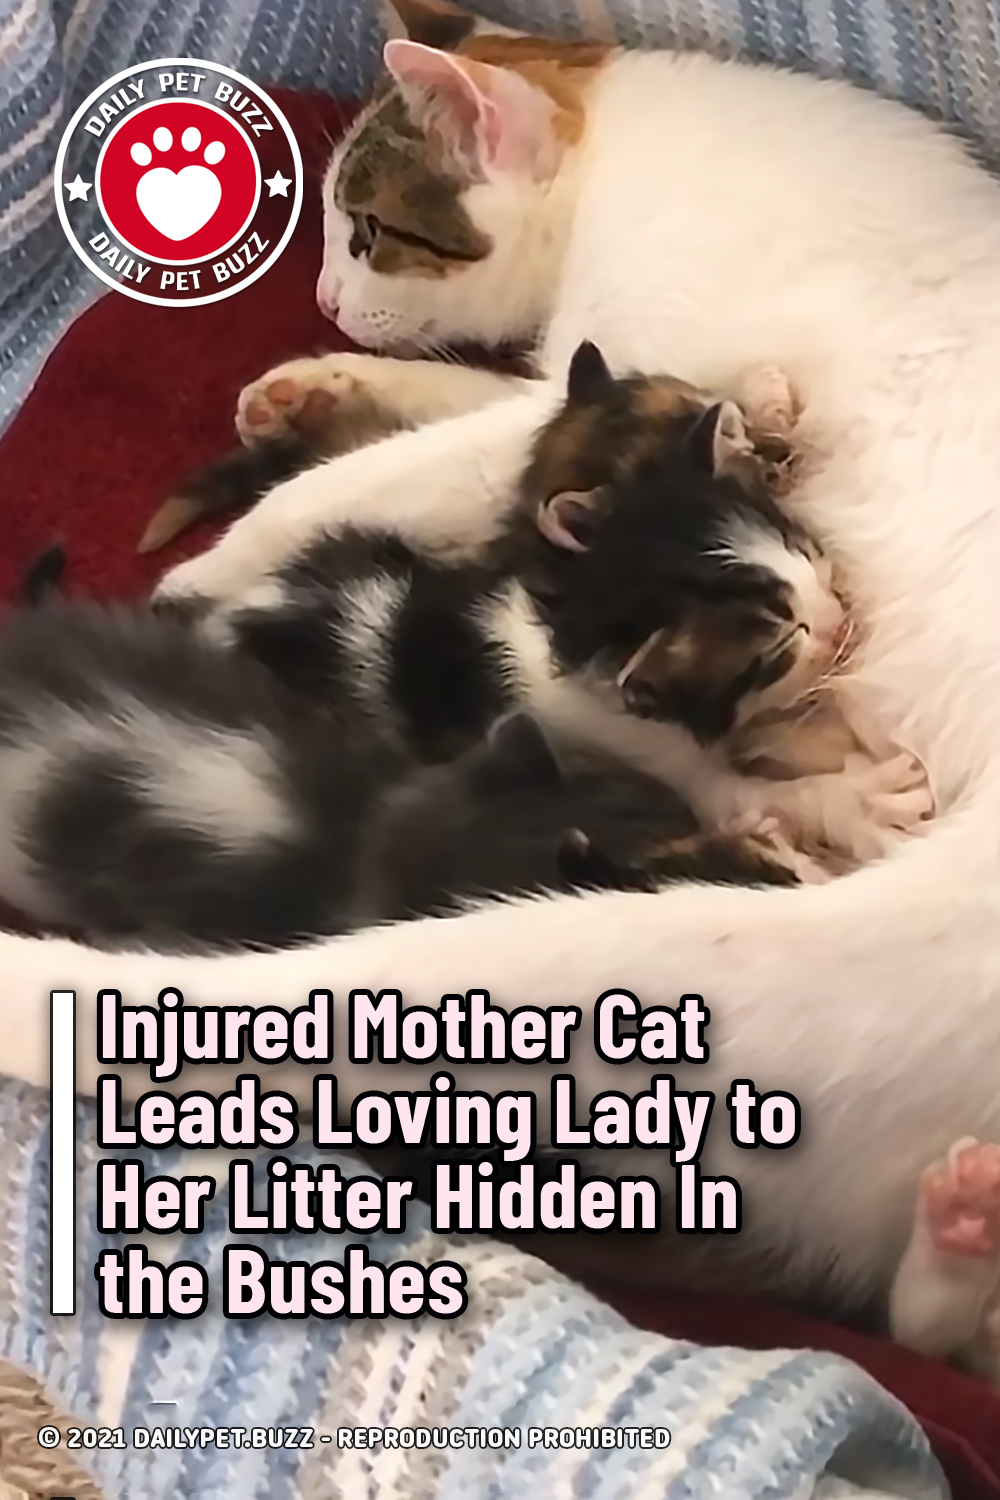 Injured Mother Cat Leads Loving Lady to Her Litter Hidden In the Bushes